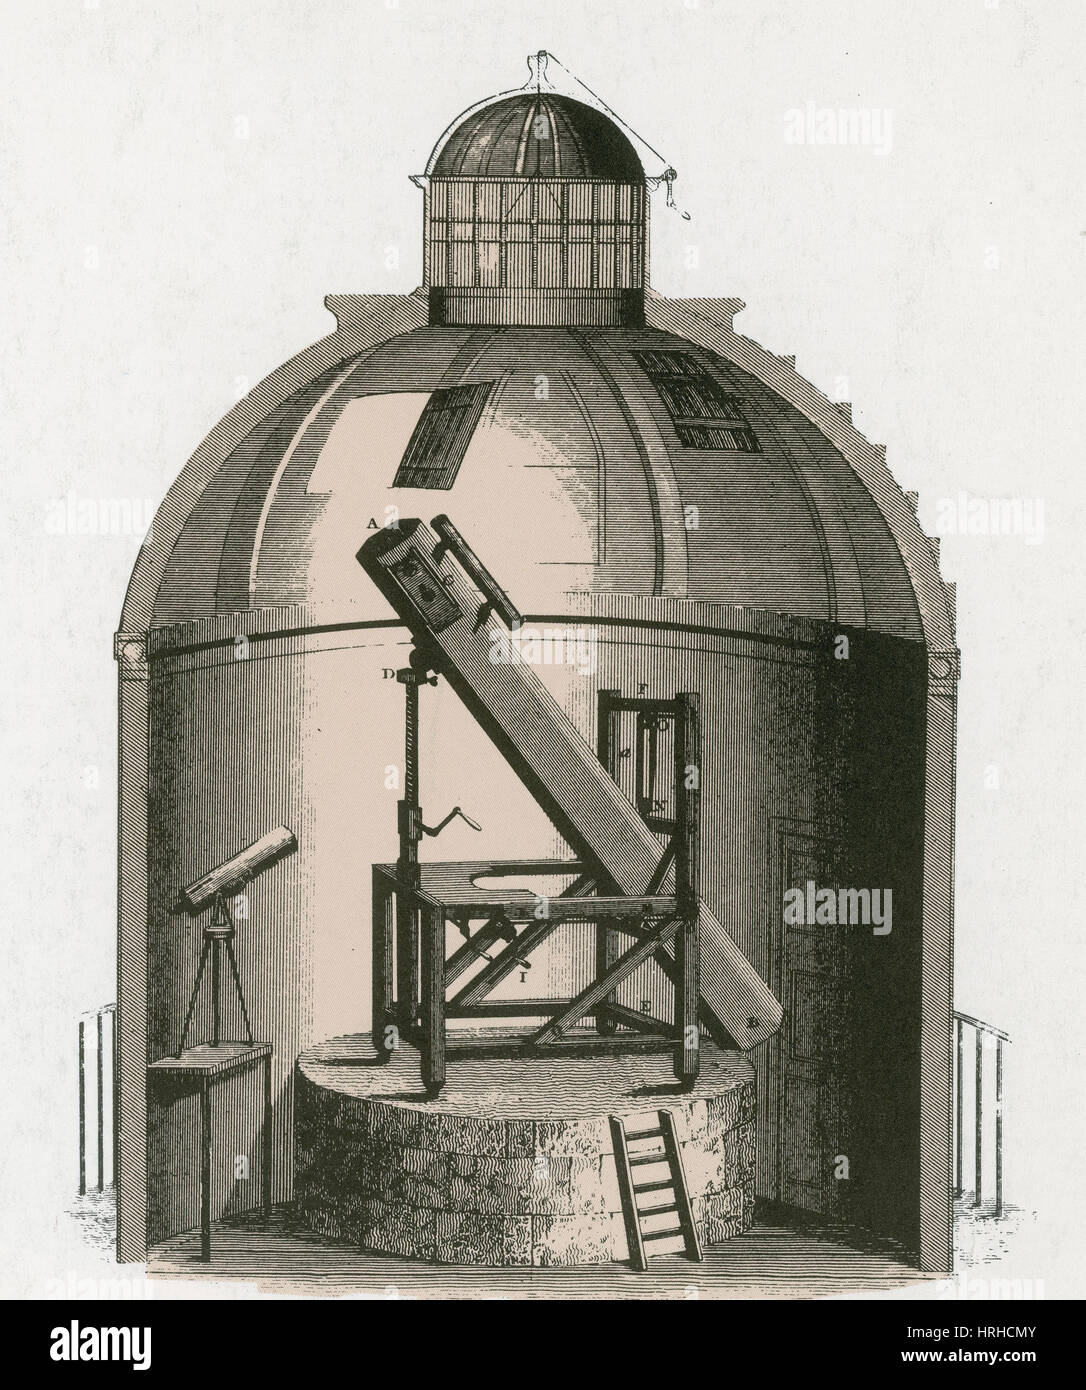 William Herschel's Telescope, 1781 - Stock Image